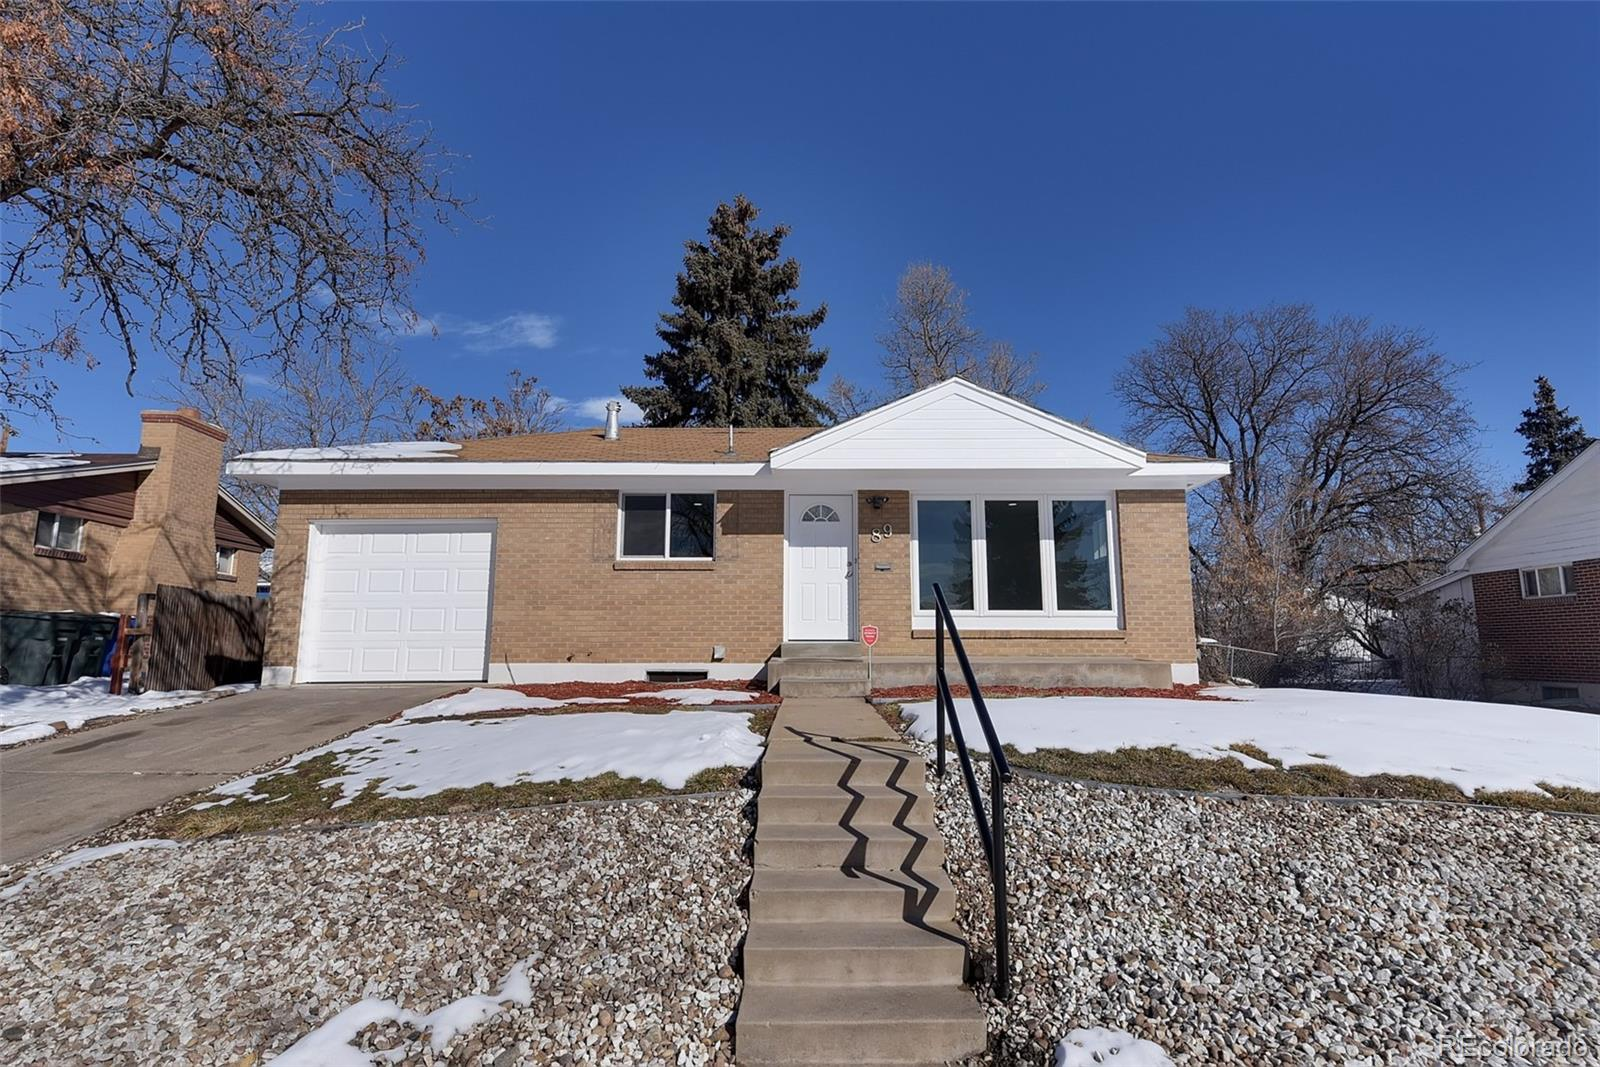 Nice Remodel! Come enjoy many many future years of low maintenance living! Newer Roof, Windows, and Furnace. New Kitchen, Baths, Carpet, Paint, Light Fixtures and More! Close to restaurants, shopping, and transportation!